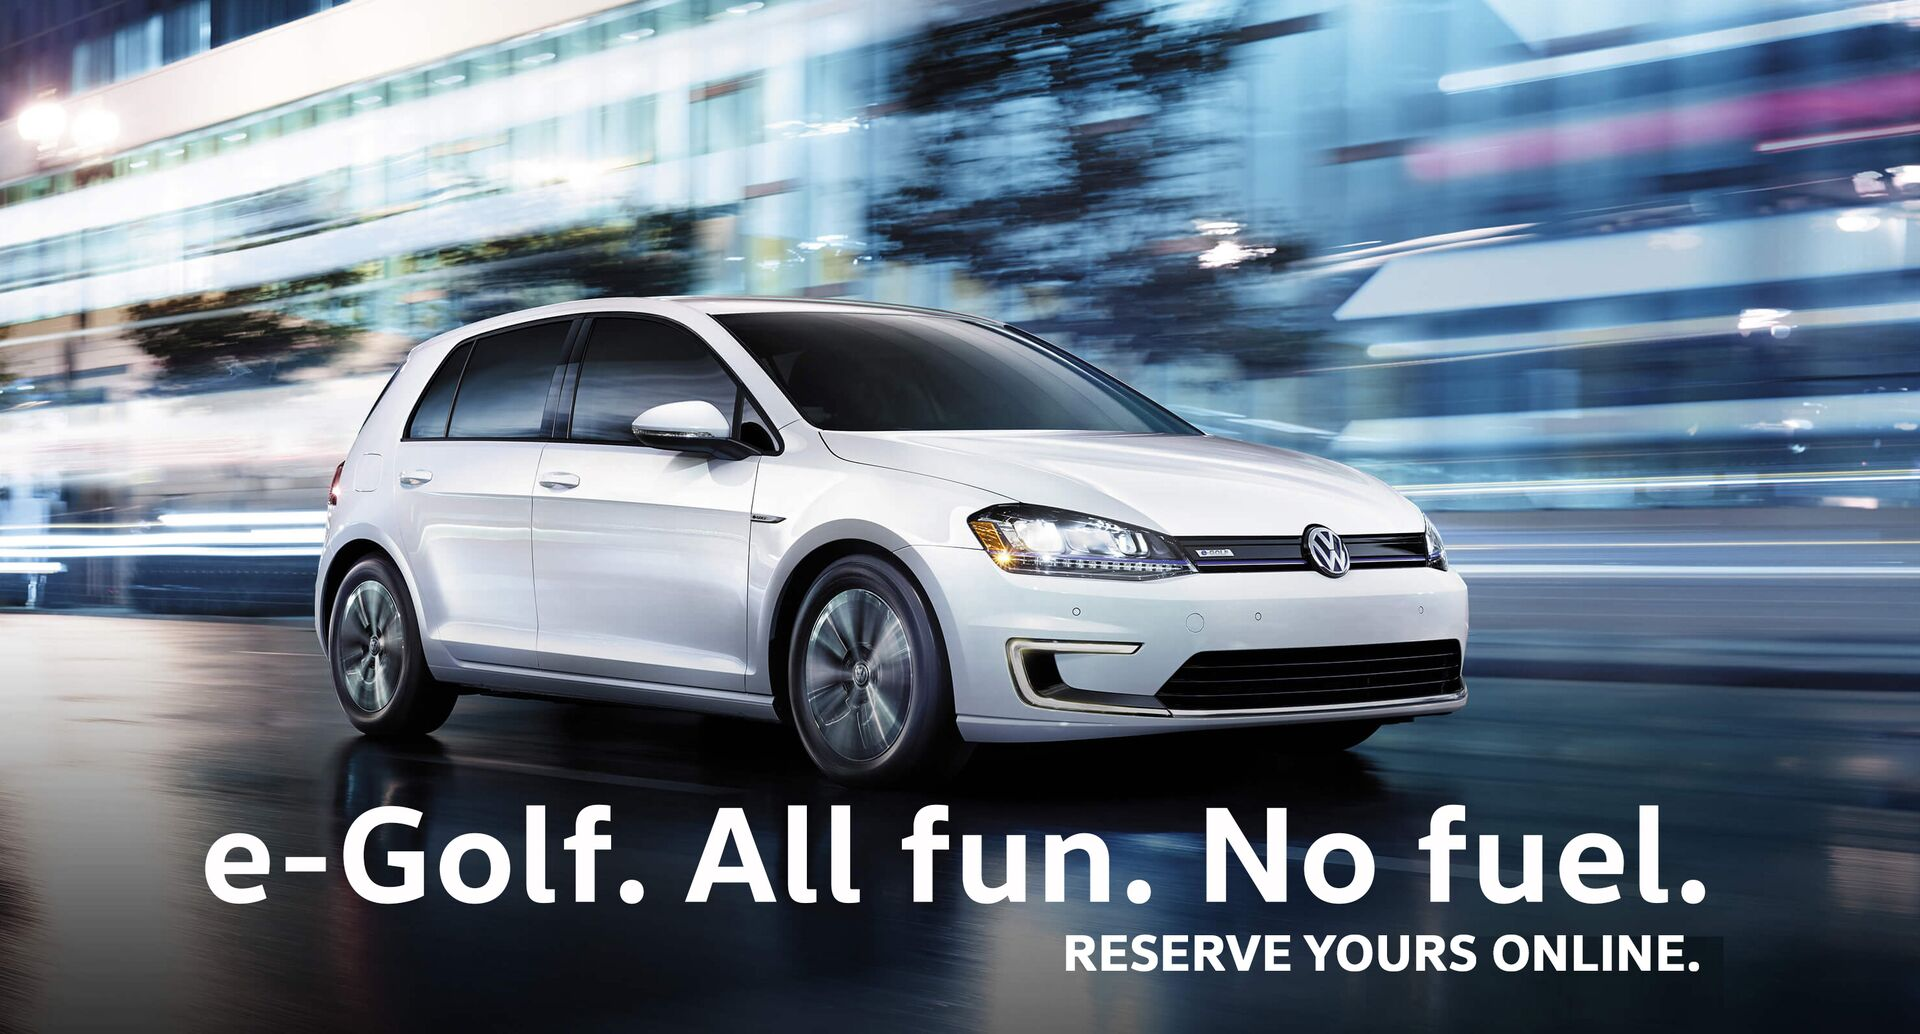 e-Golf is coming to Vancouver